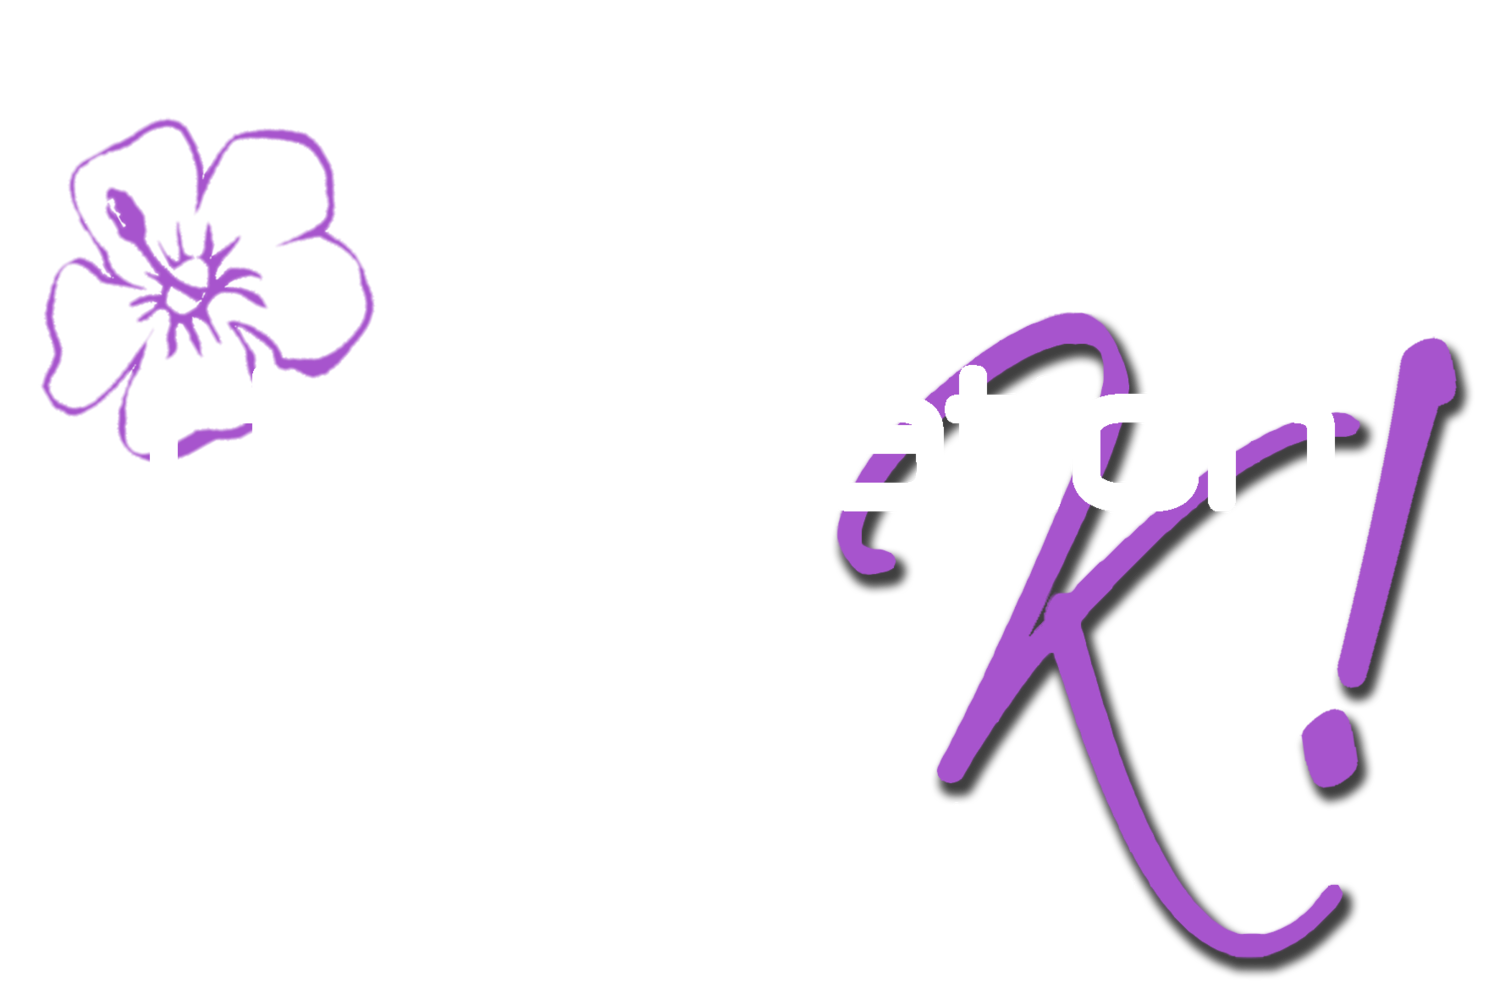 Destination-K! by Katharina Heuermann